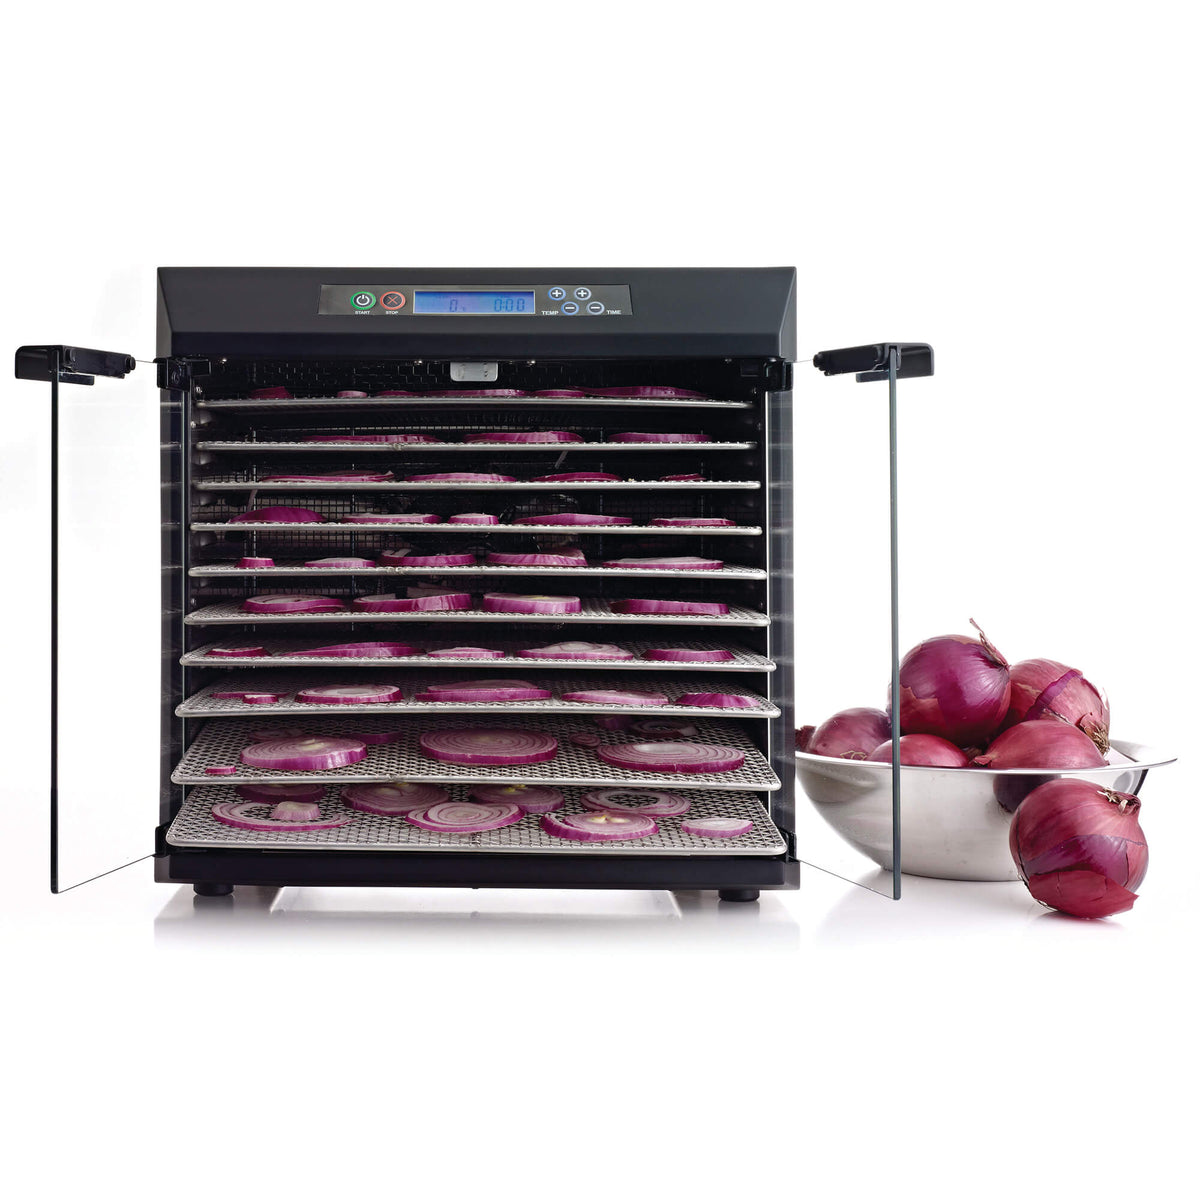 Excalibur EXC10EL 10 tray stainless steel digital dehydrator front view with glass armoured doors open and food on the trays.